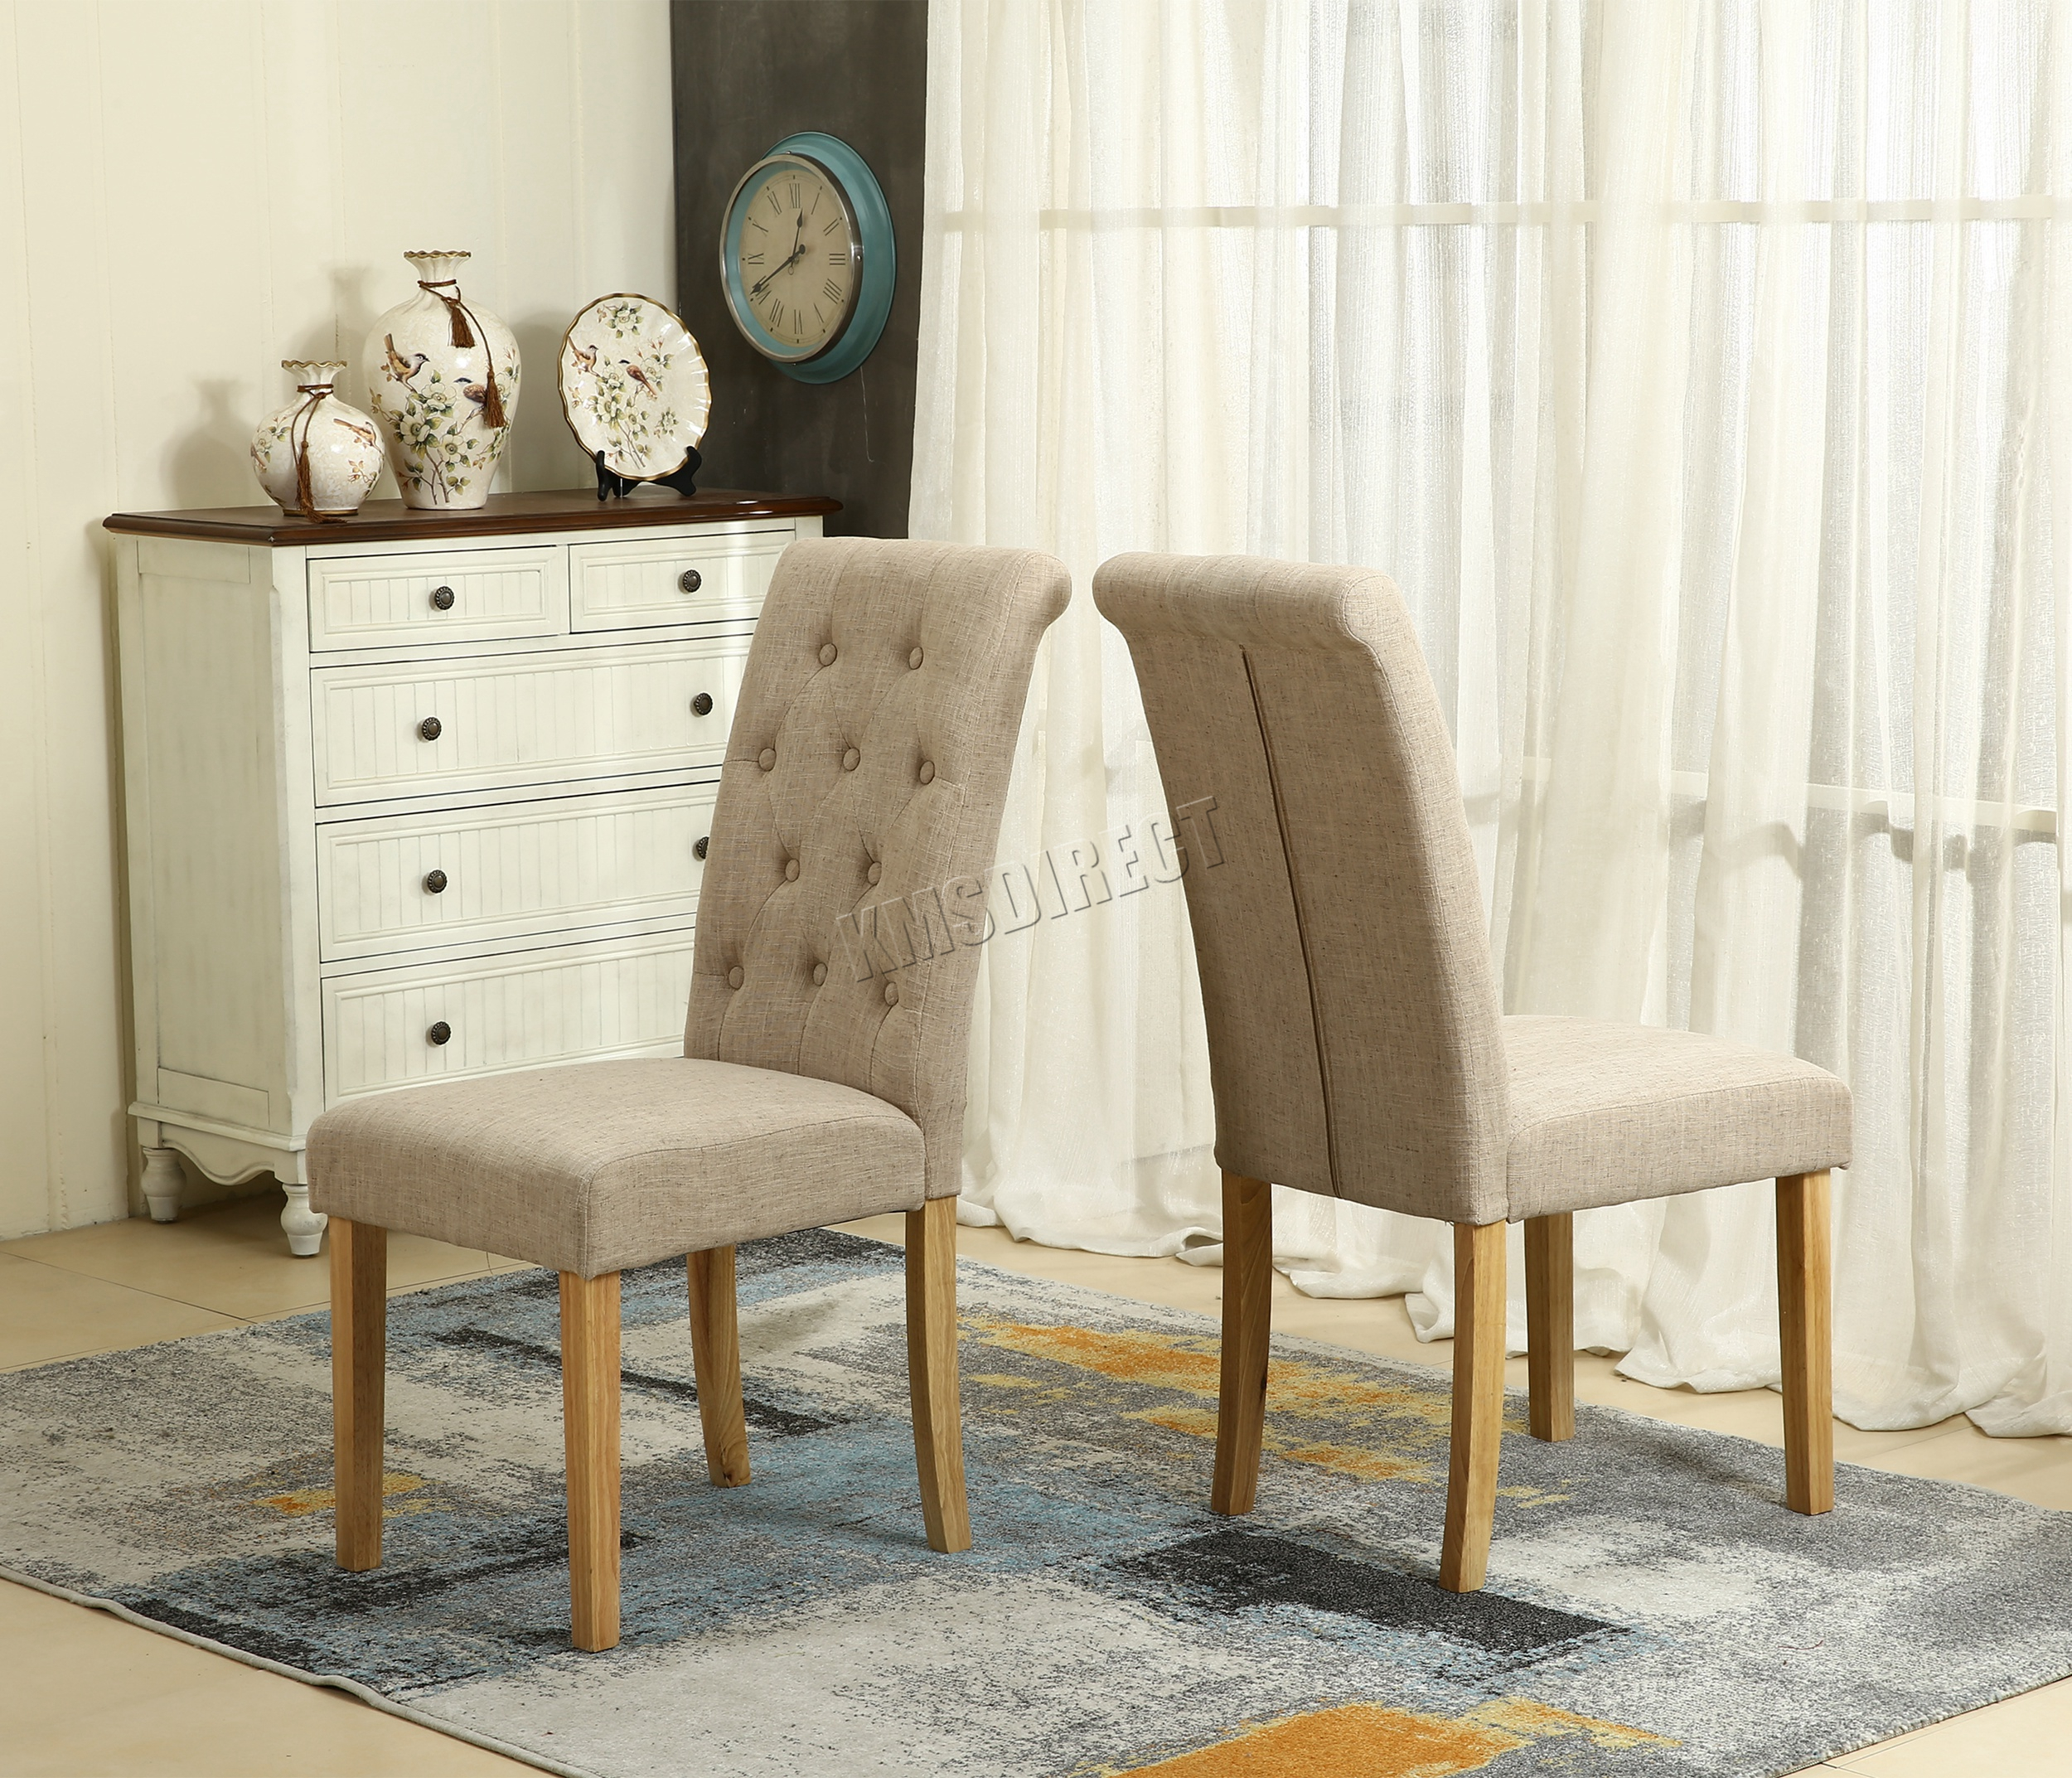 Fabric Dining Chairs Set 2 Dining Chairs Elegant Button Tufted